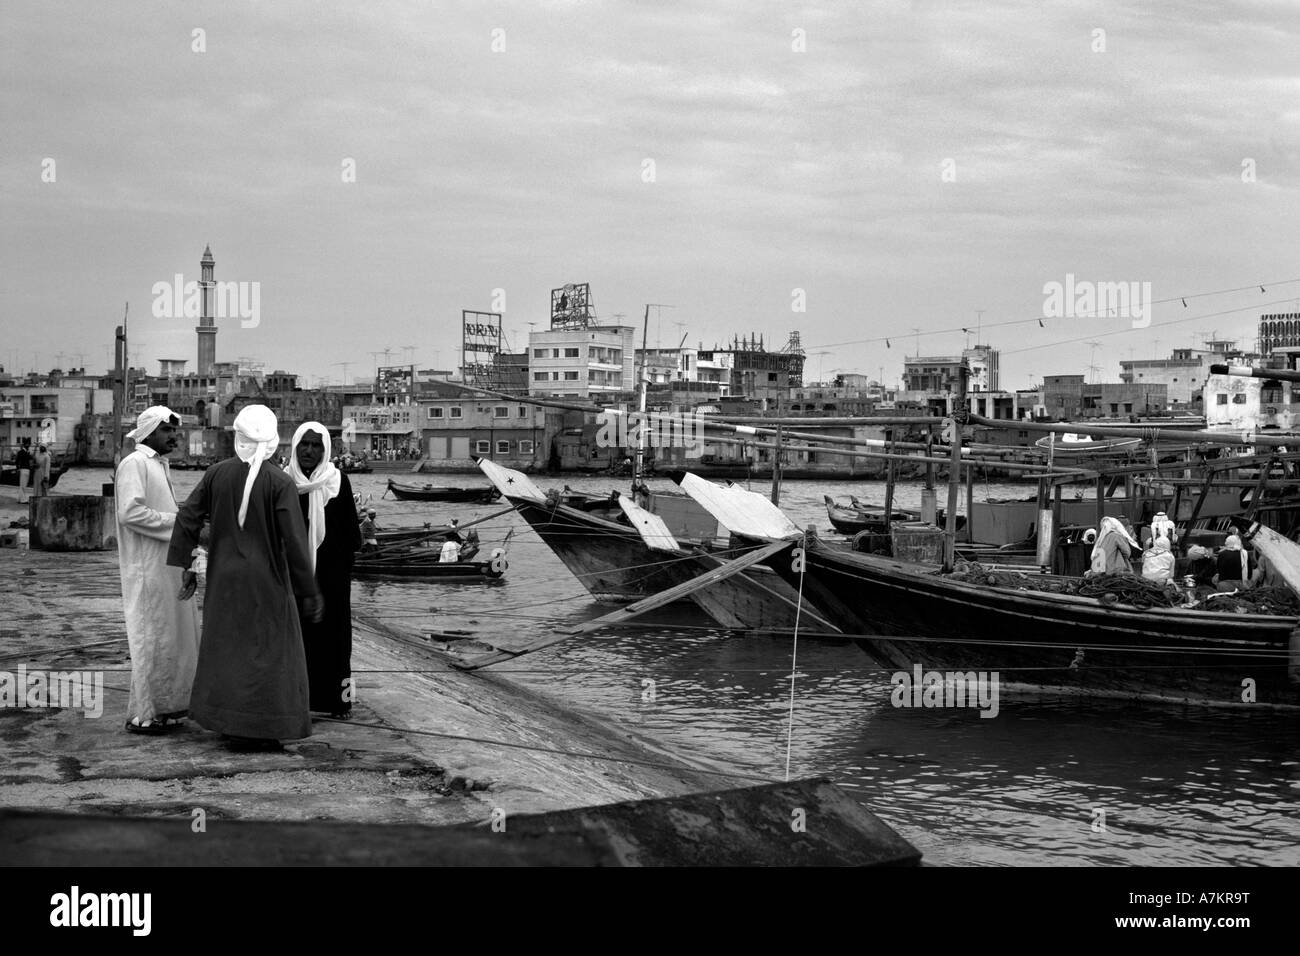 Search results for dhows and uae black white stock photos and images